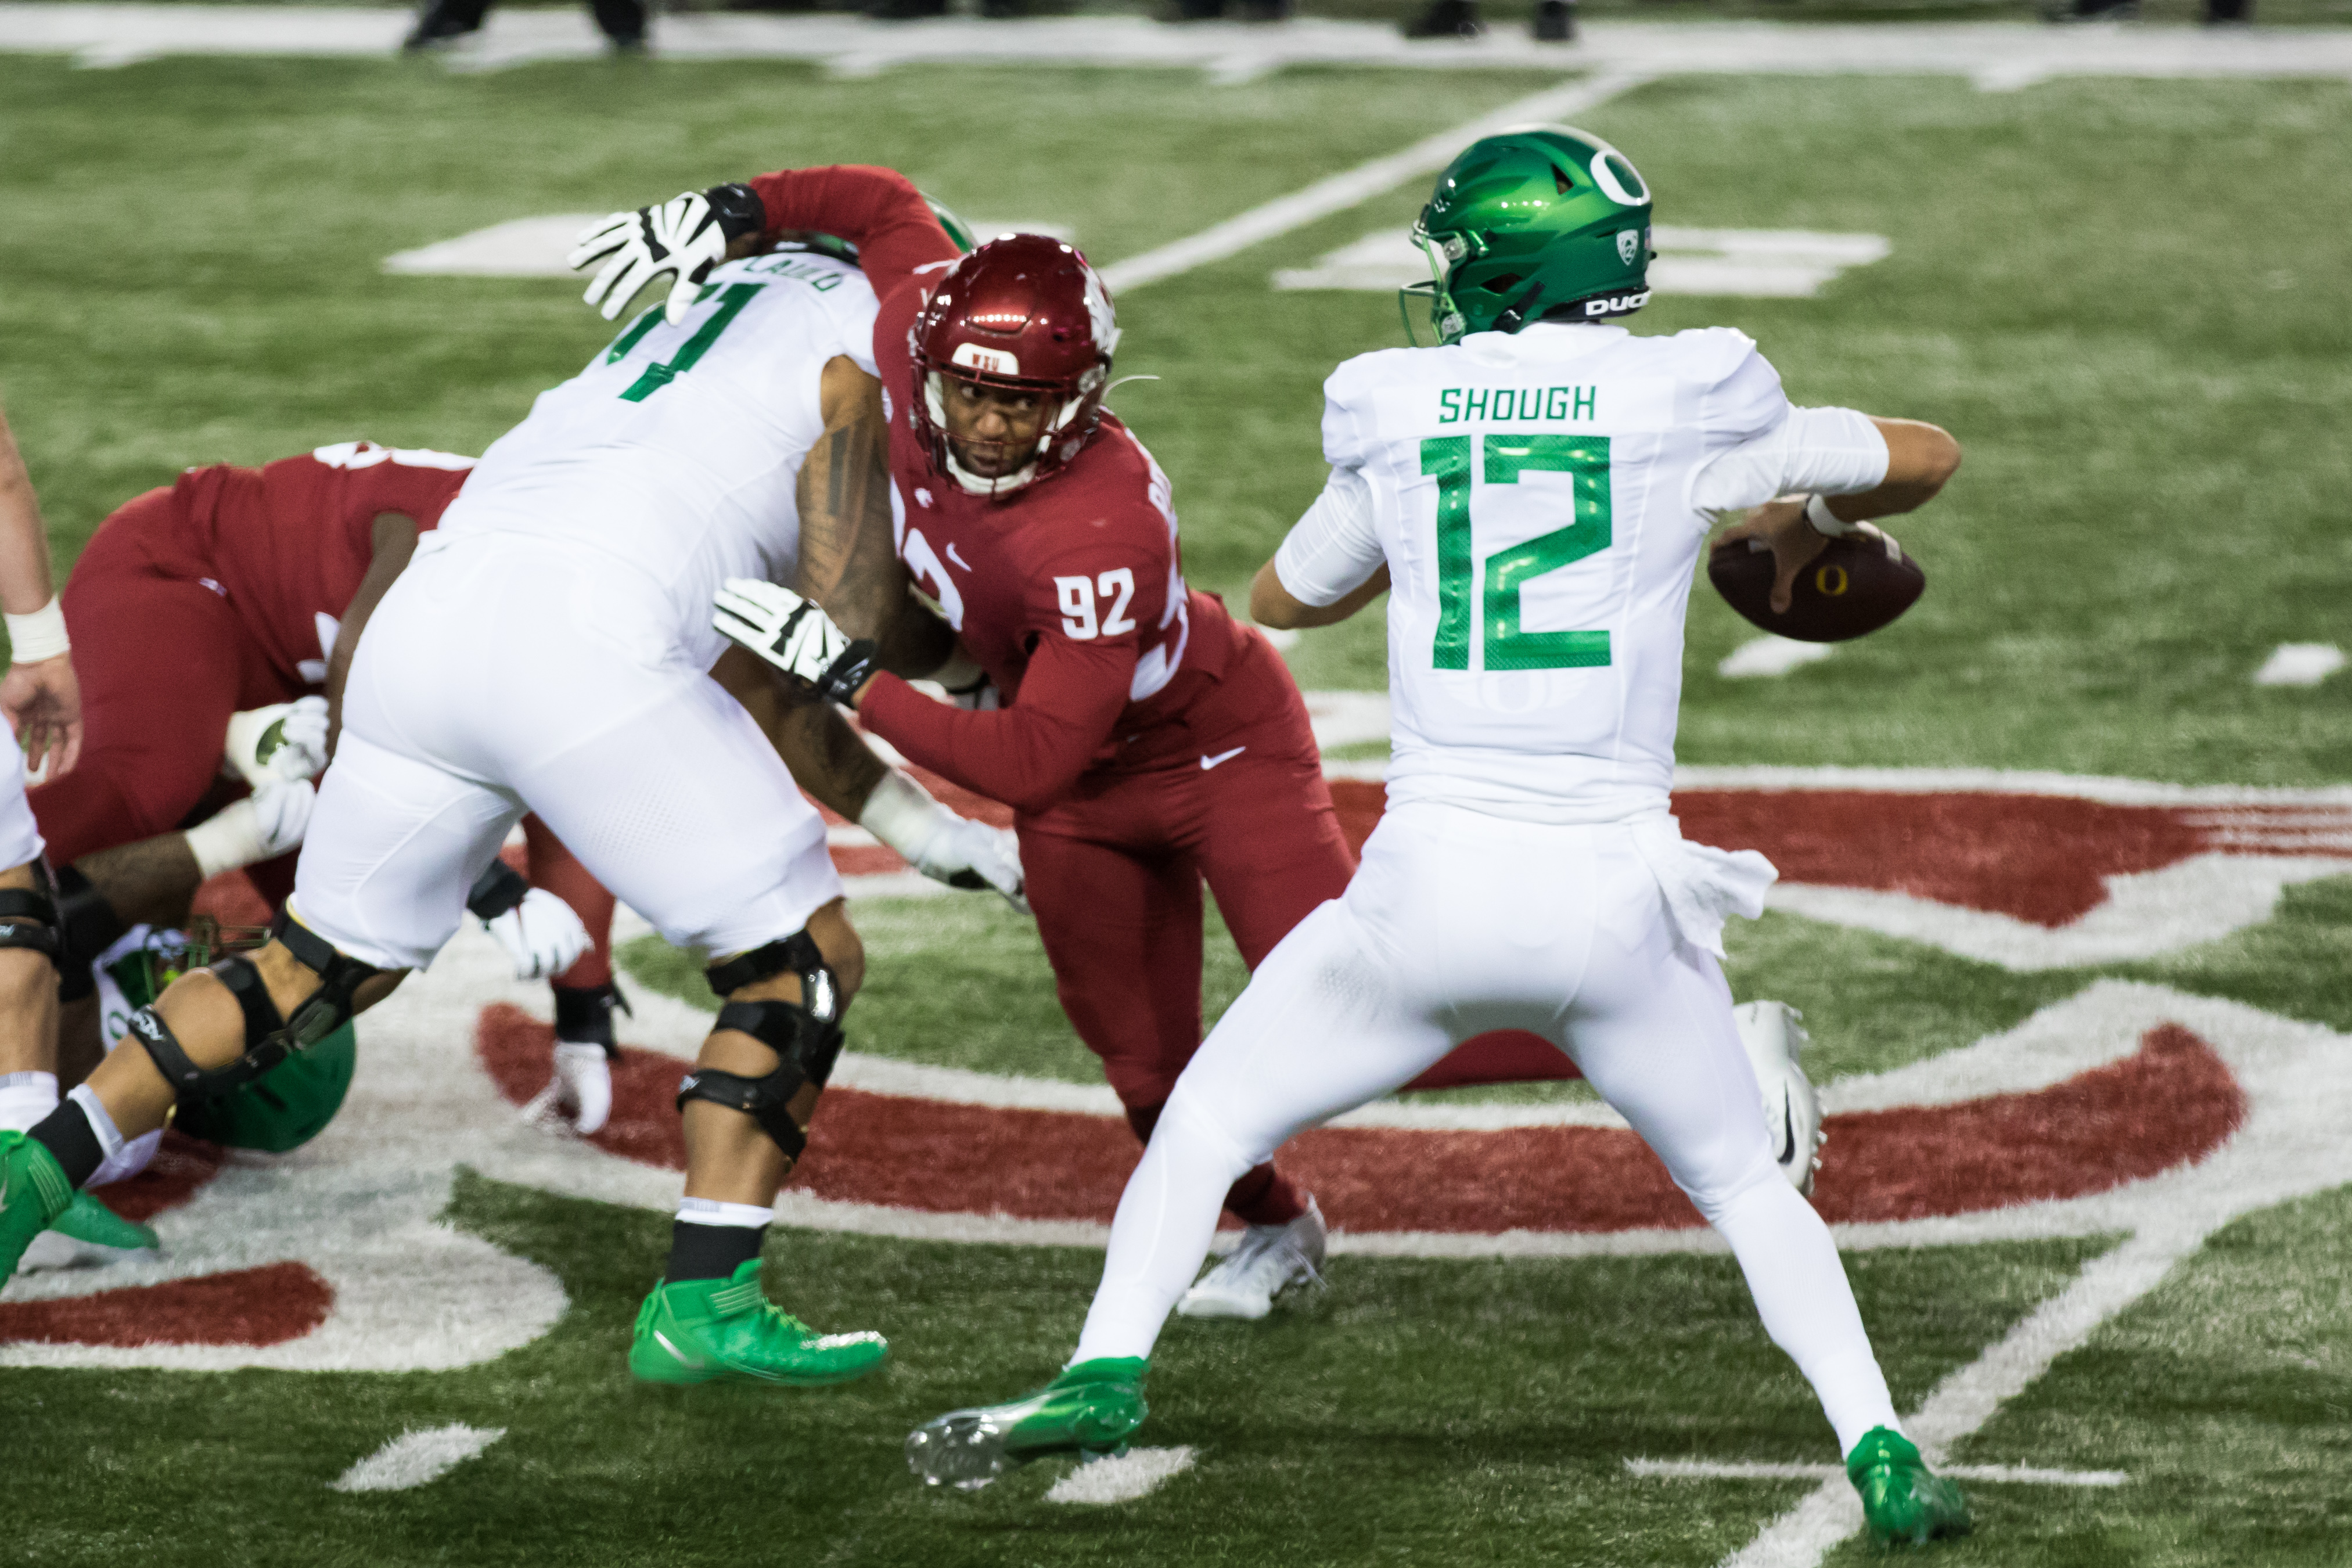 PULLMAN, WA - NOVEMBER 14: Washington State EDGE Will Rodgers (92) fights to get to Oregon QB Tyler Shough (12) in the second quarter of the Pac 12 North divisional matchup between the Oregon Ducks and the Washington State Cougars on November 14, 2020, at Martin Stadium in Pullman, WA.